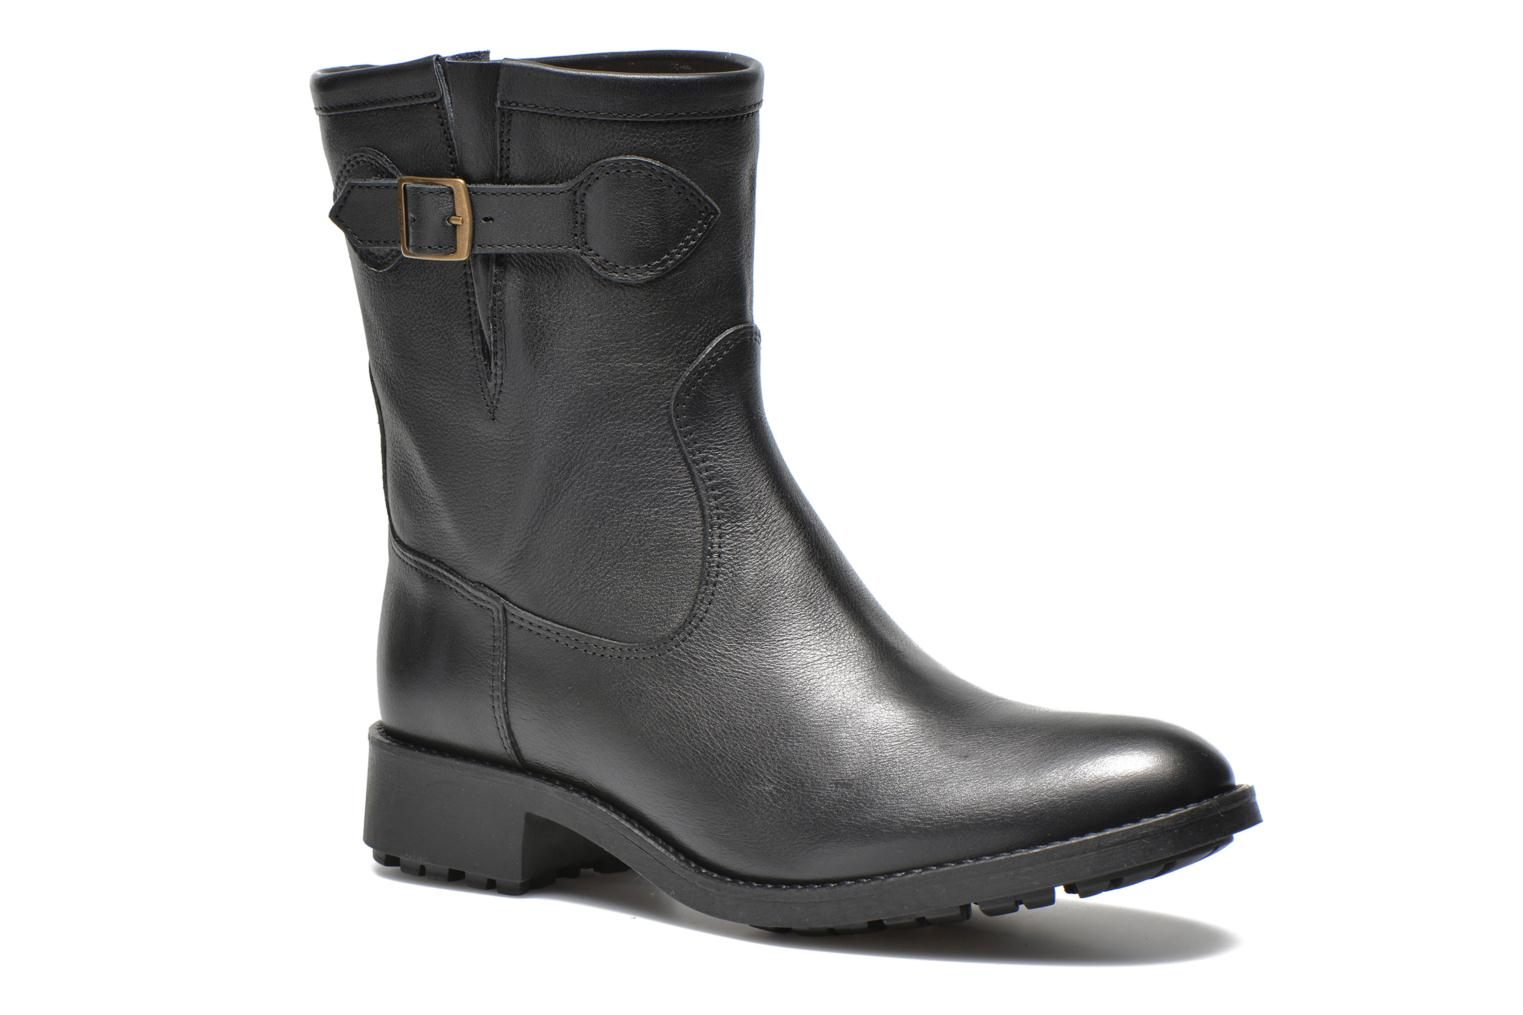 Chanteboot L Black